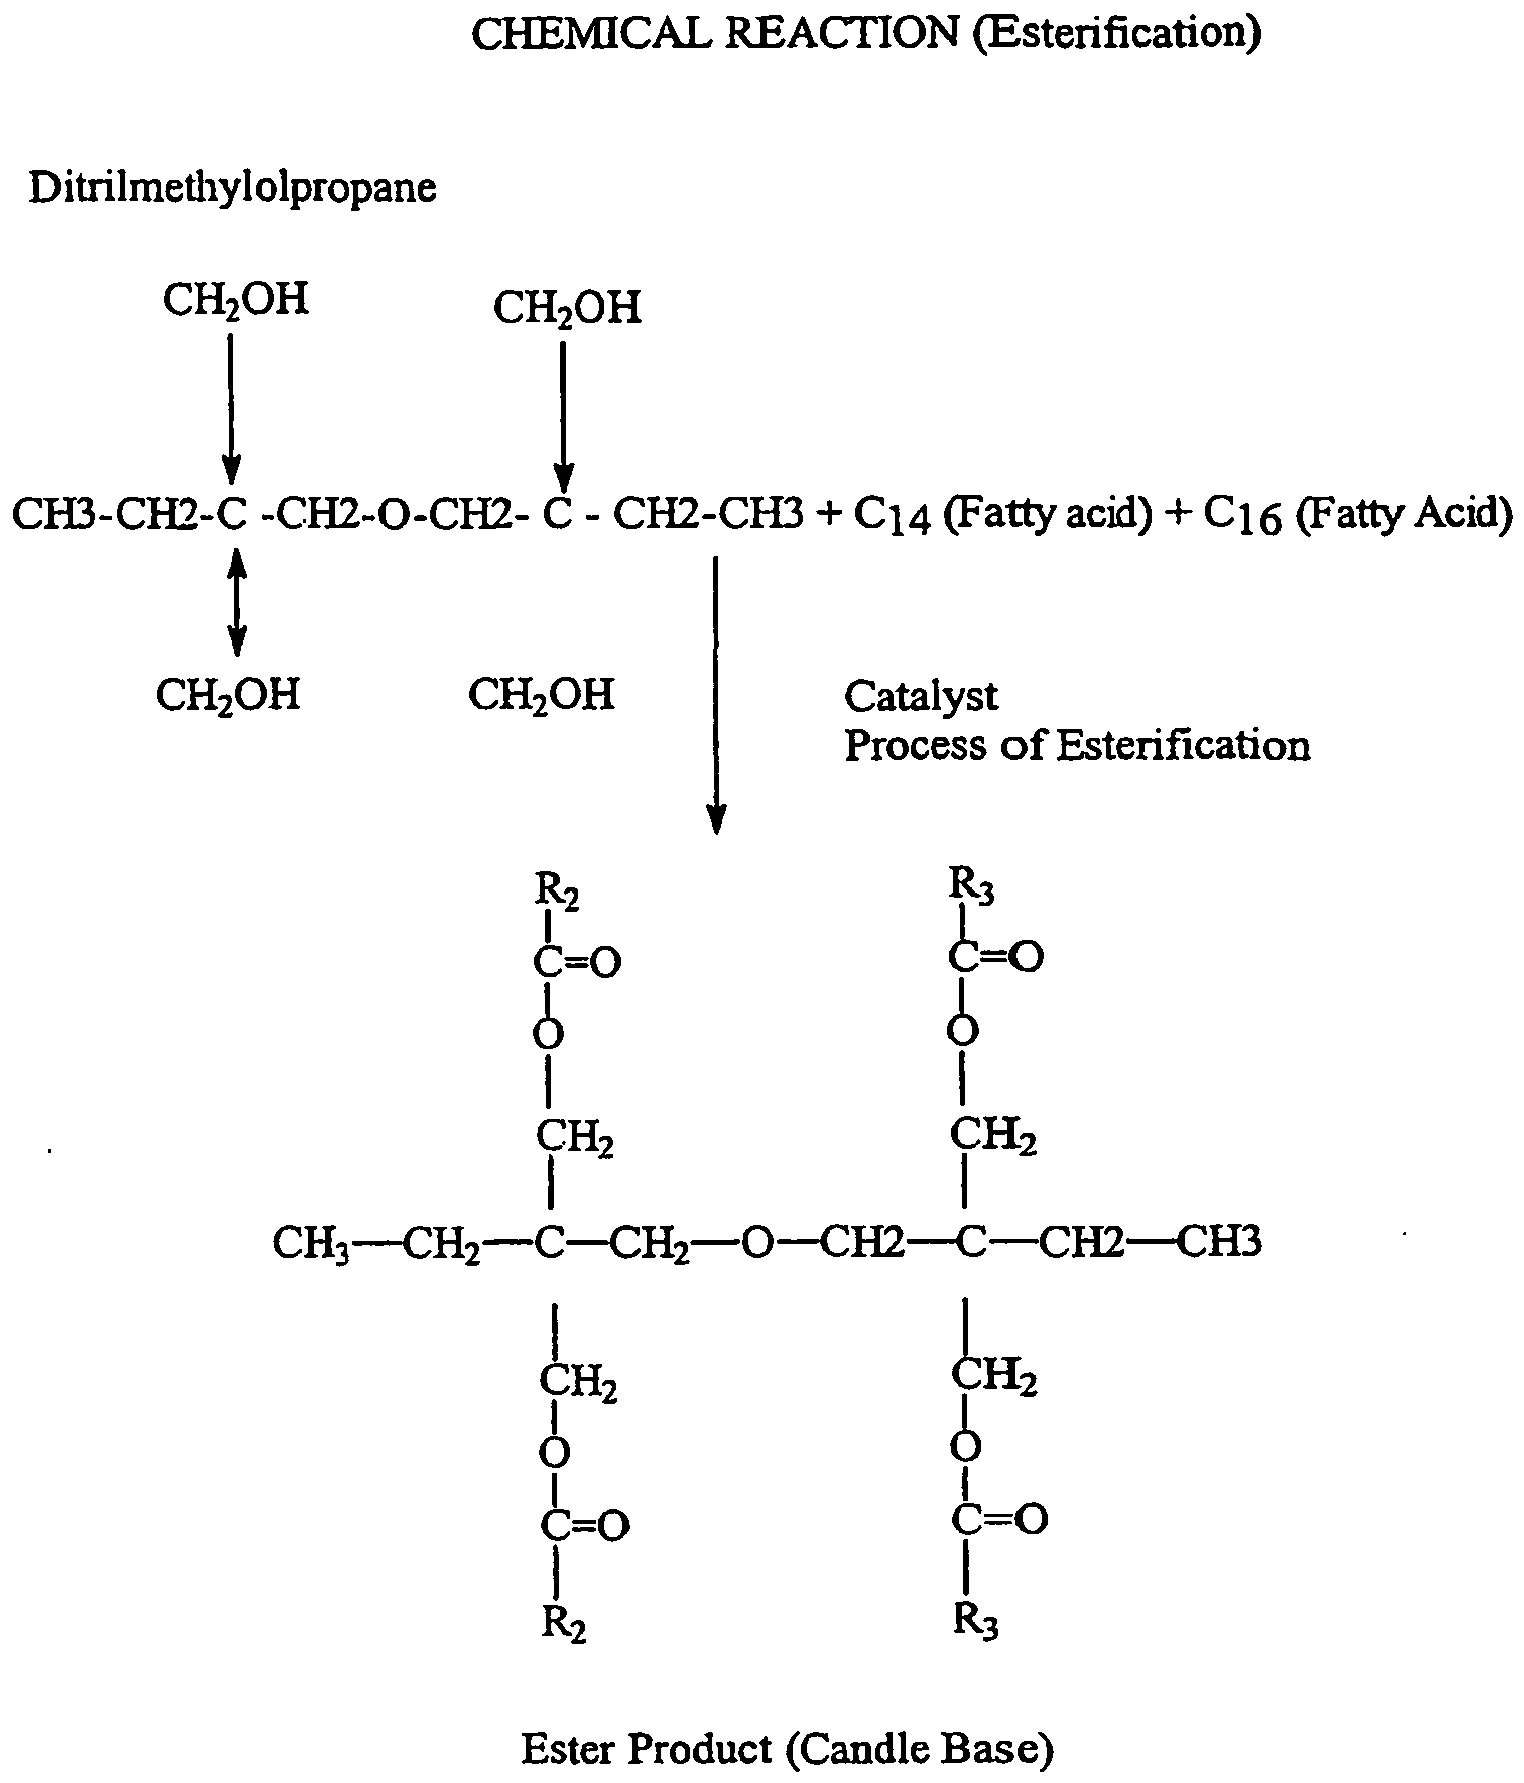 how to get chemical formula from structures